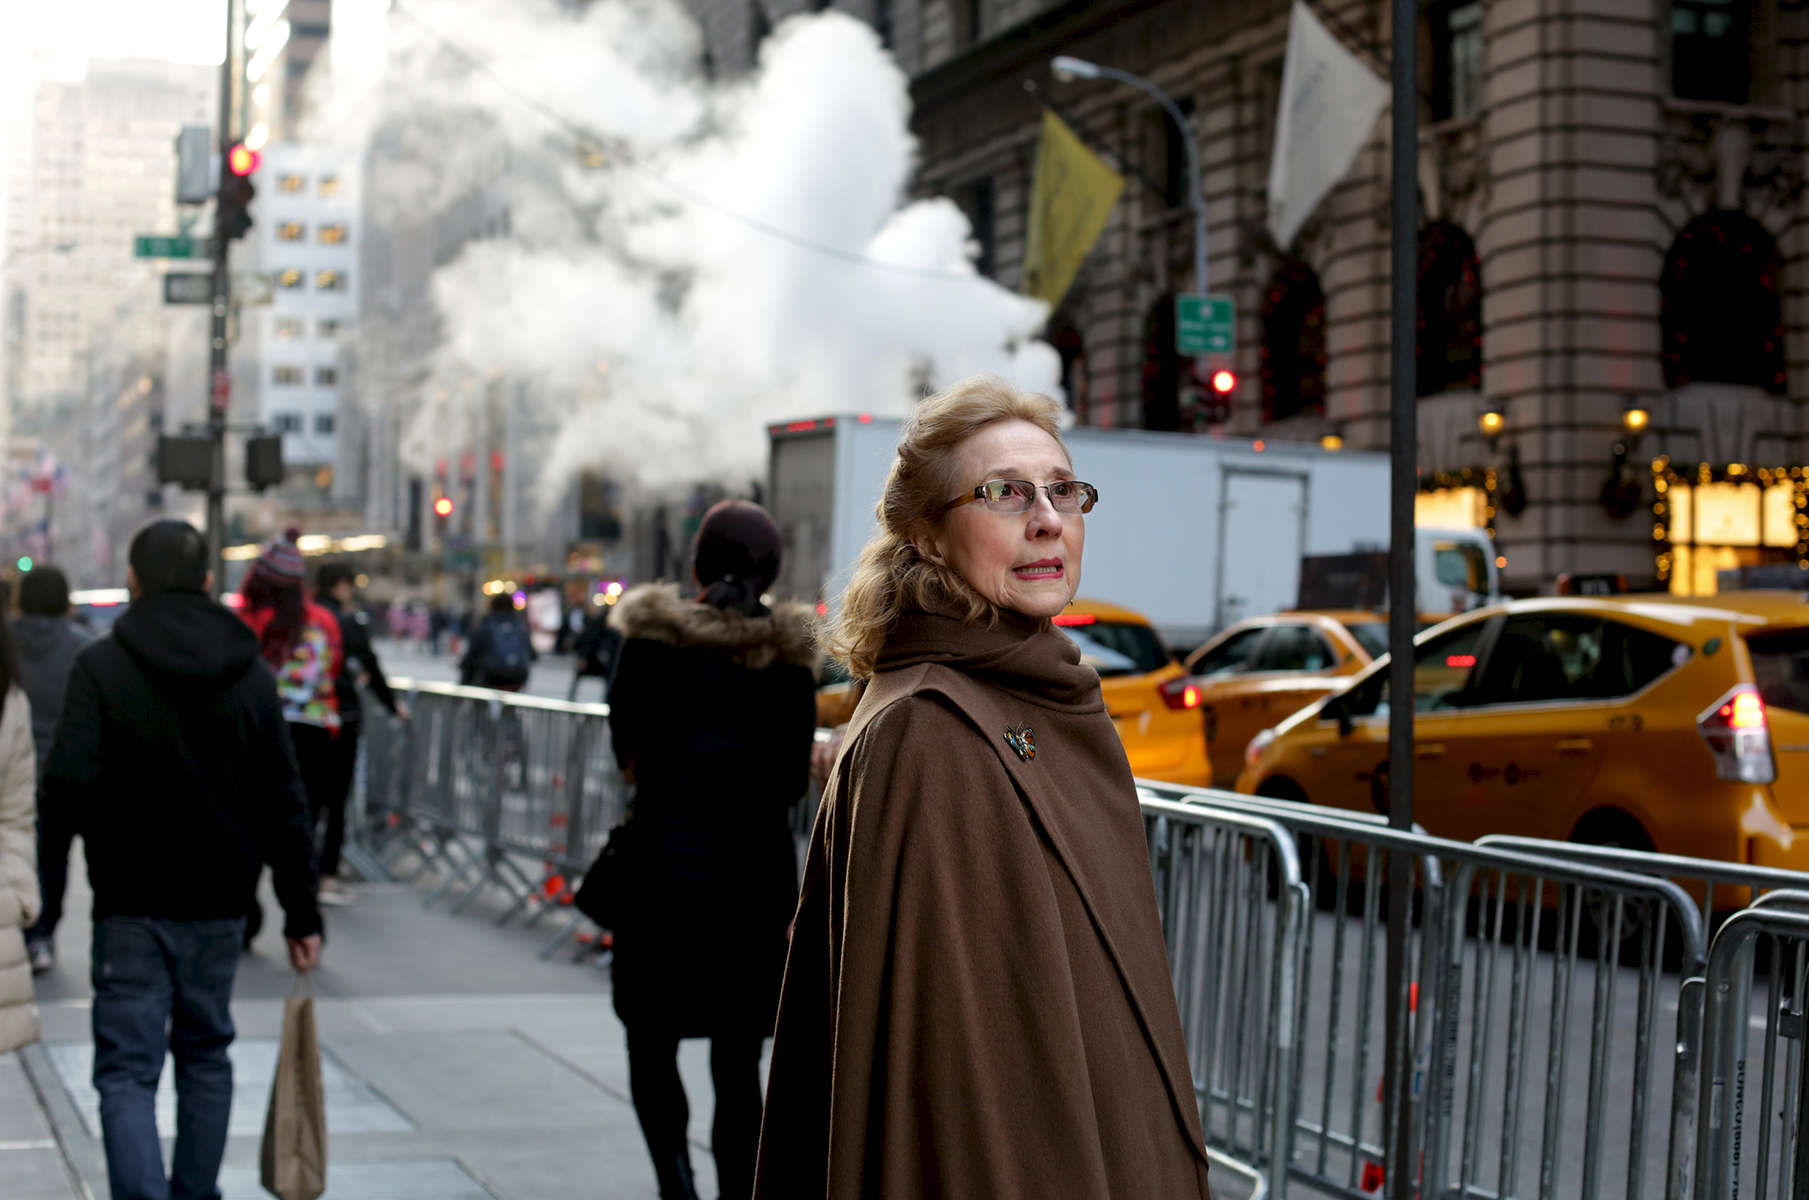 "A passerby gazes at Trump Tower, the current residence of Republican President elect Donald Trump, in Manhattan, NY on November 28, 2016.-""Trump Gawkers{quote} is a visceral look at what draws people to Trump Tower, the current residence of U.S. President elect Donald Trump. Hoards of people undertake the trek, bearing security and weather roadblocks, to stare, gawk, absorb, record. The magnetism to the tower (and by extension, to the man inside it,) manifests in the sheer numbers of daily visitors, as well as in the fascination etched across their faces. Upon first look, the time so many spend there seems like sport and amusement, but underneath upturned eyes and selfie smiles prevails an undercurrent of anxiety - and not just for those who didn't want Trump in the Oval Office. Some of the electorate that voted against Hillary is now unsure for which version of Trump they voted. People's upward gazes, no matter their political views, seek answers: How could this happen? Or now that it has, what will it mean?"